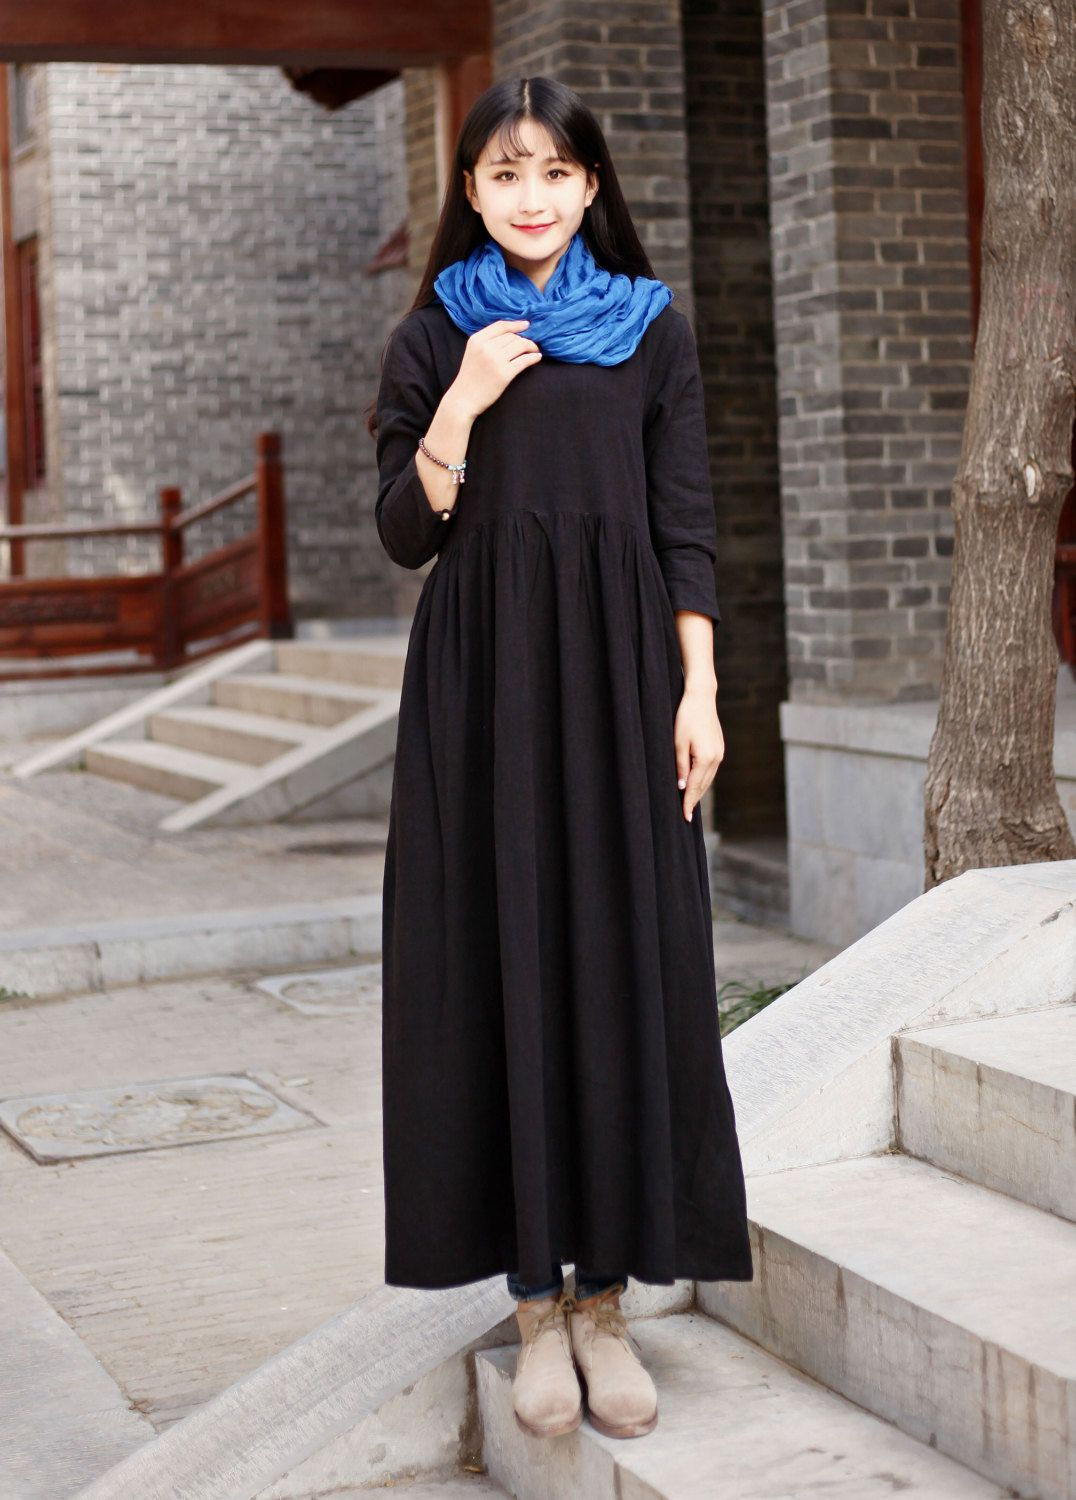 a07a1e09a4d52 Linen dress Cotton Maxi dress Casual loose long dress Custom-made Plus size  dress Autumn Large size dress plus size clothing Winter Dresses by Luckywu  on ...